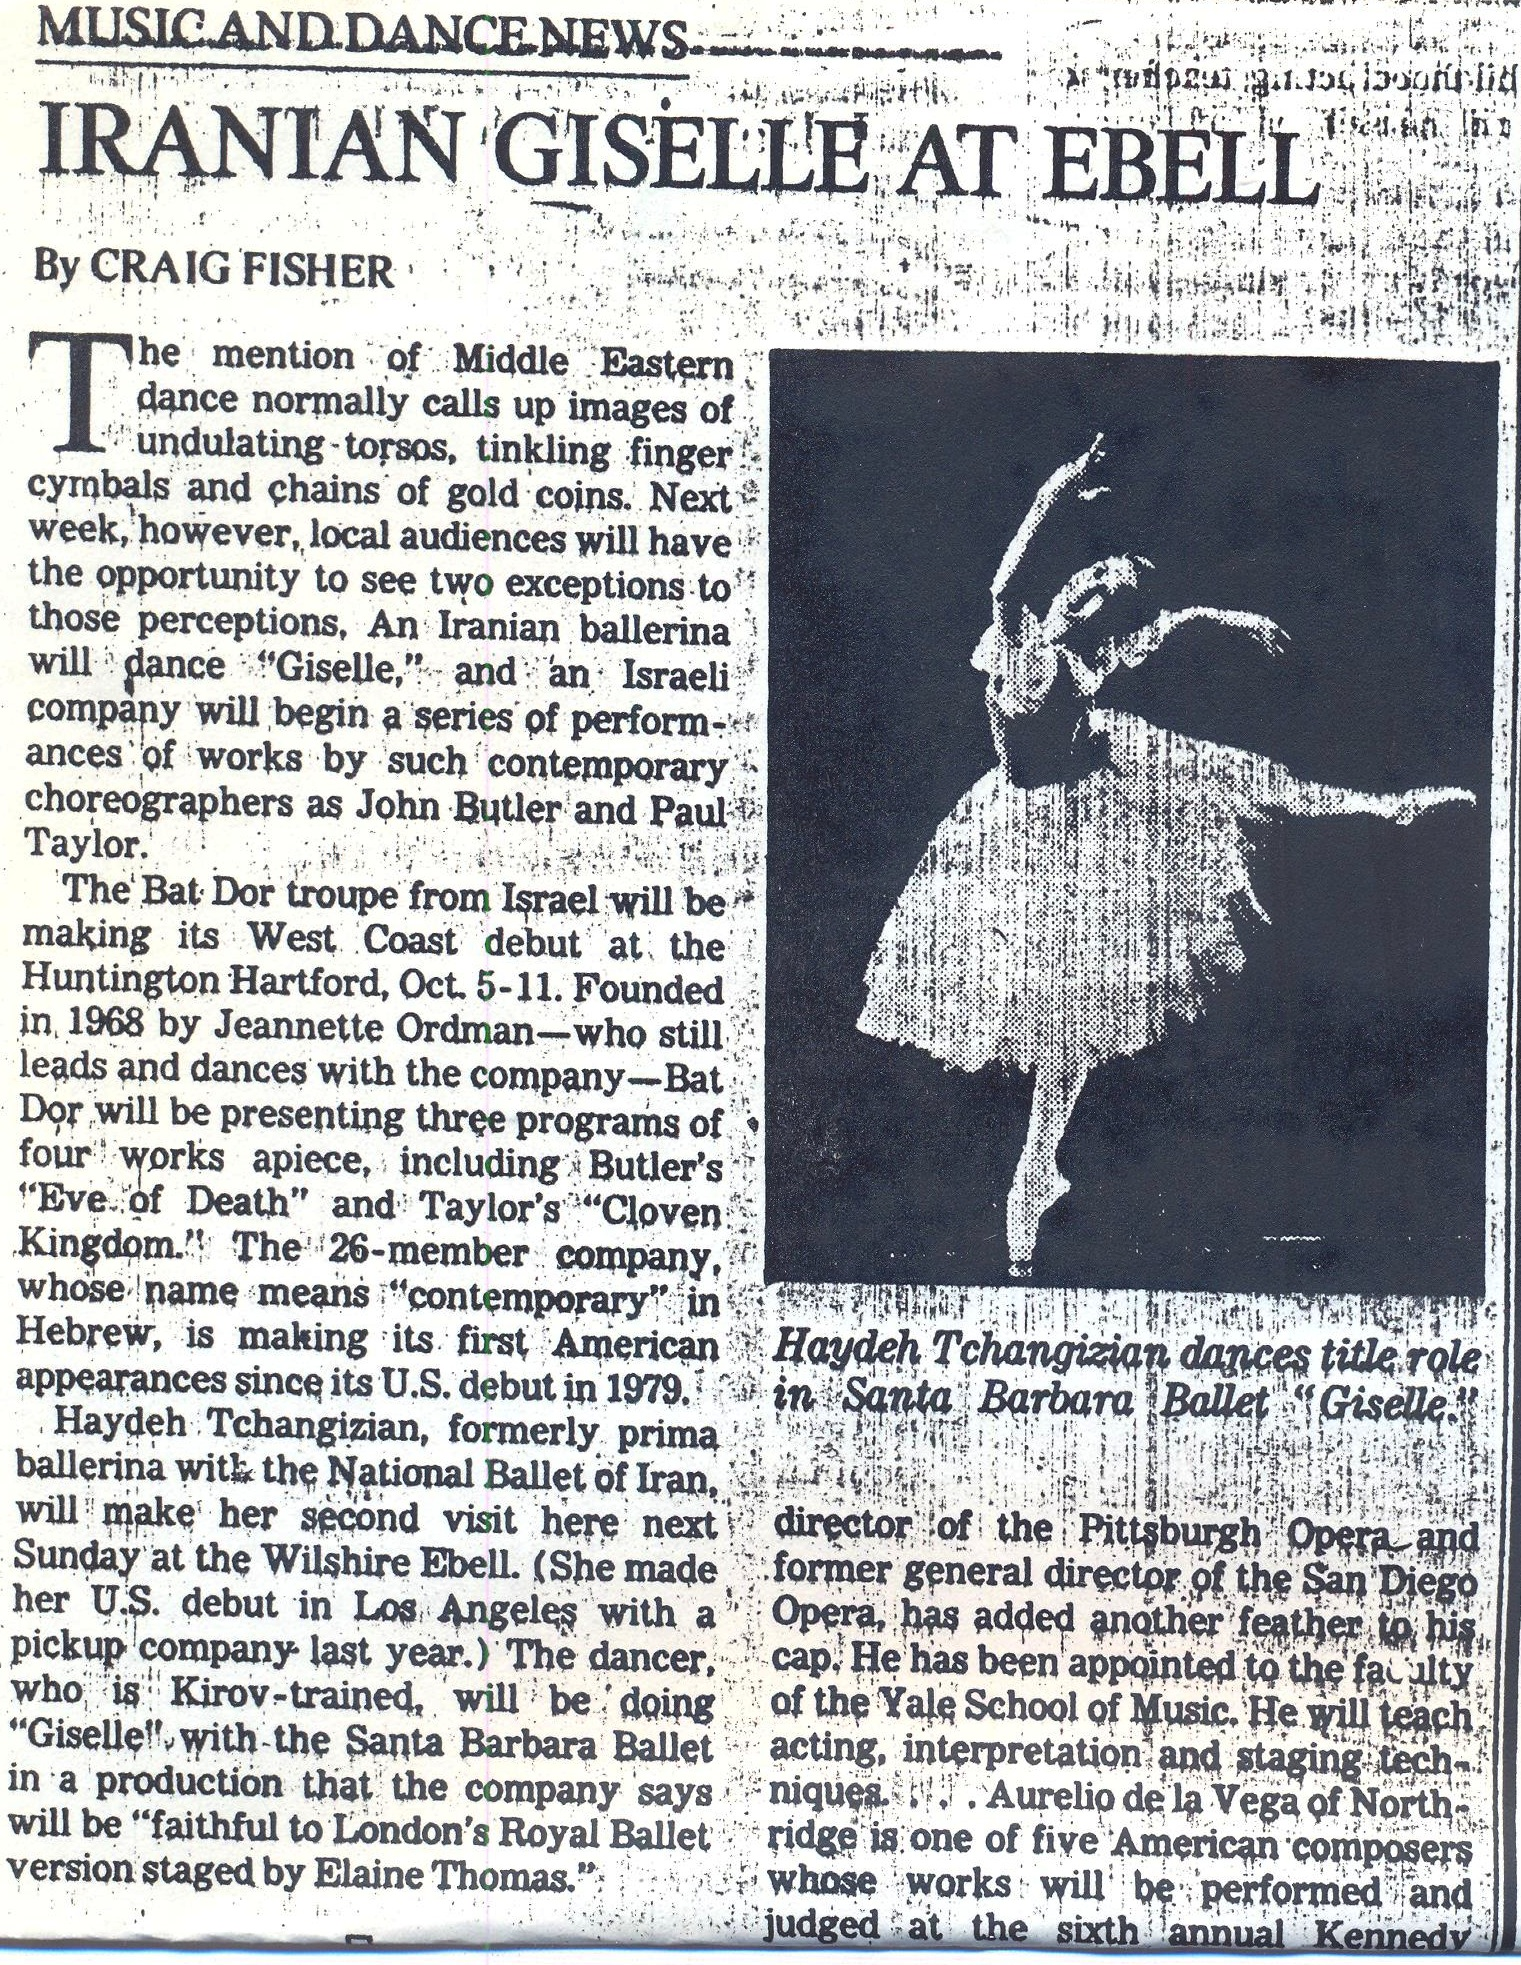 Los Angeles Times, September 1983